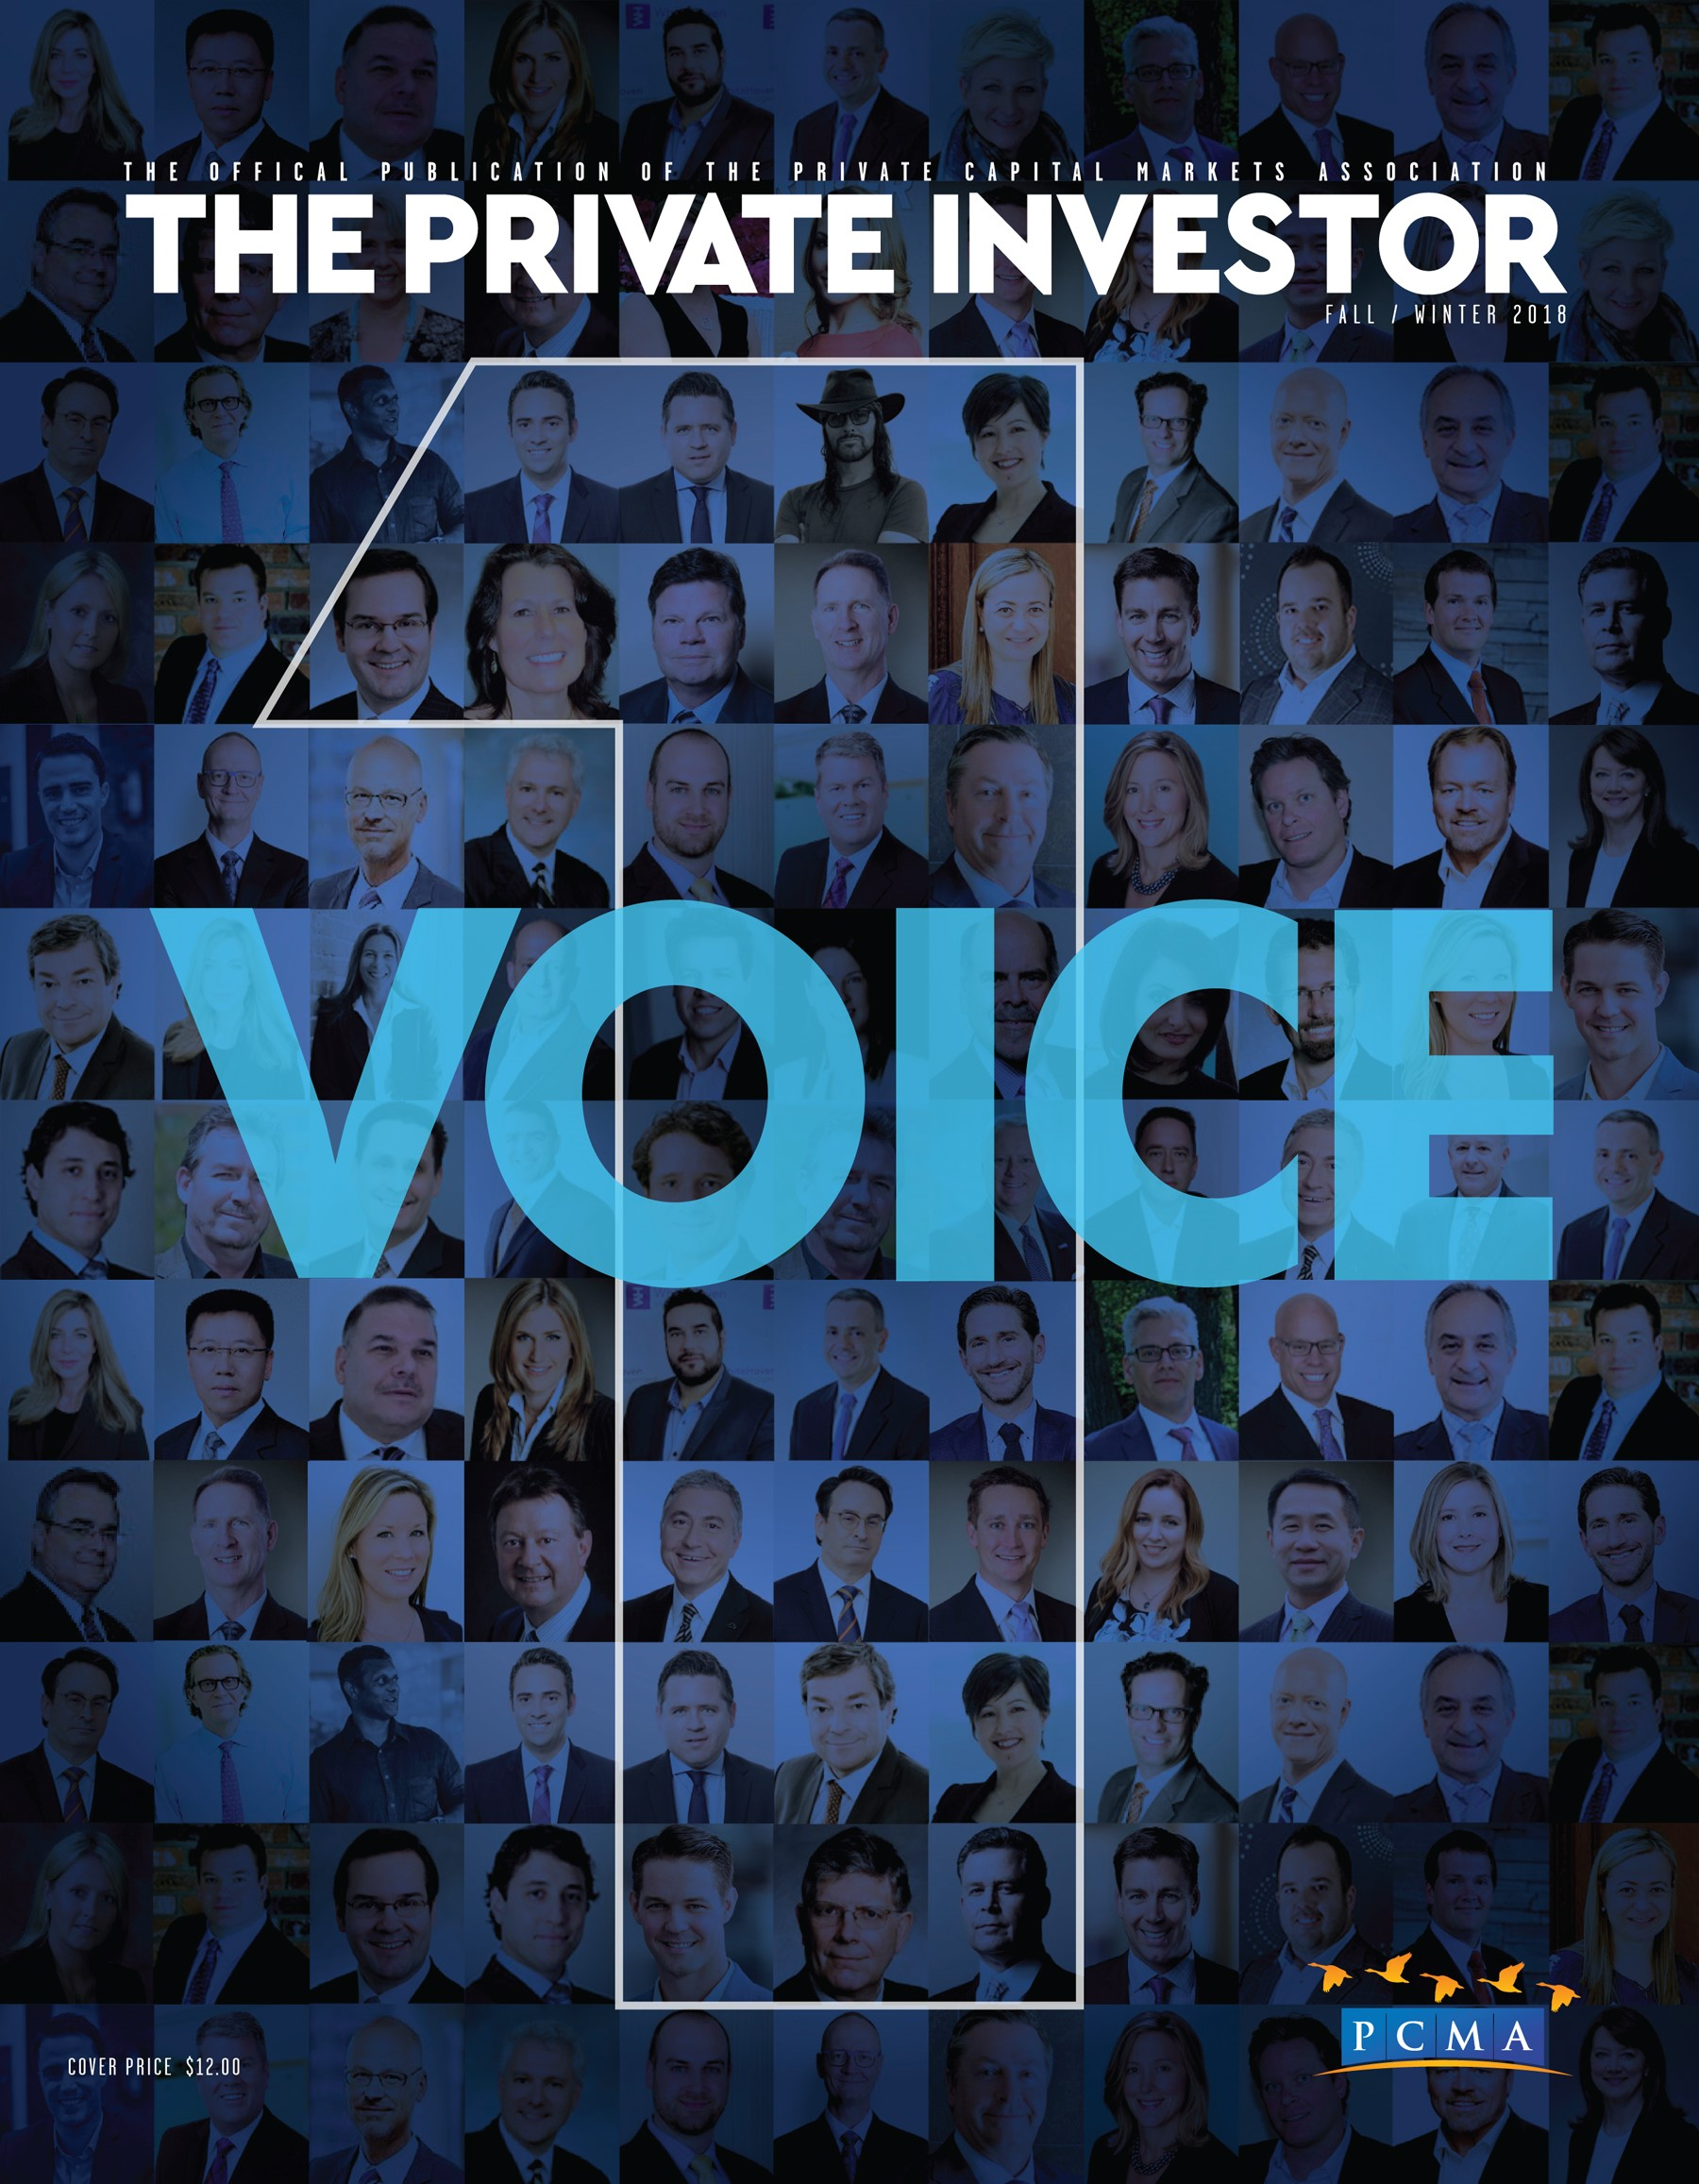 Call for articles & ads in the Private Investor magazine